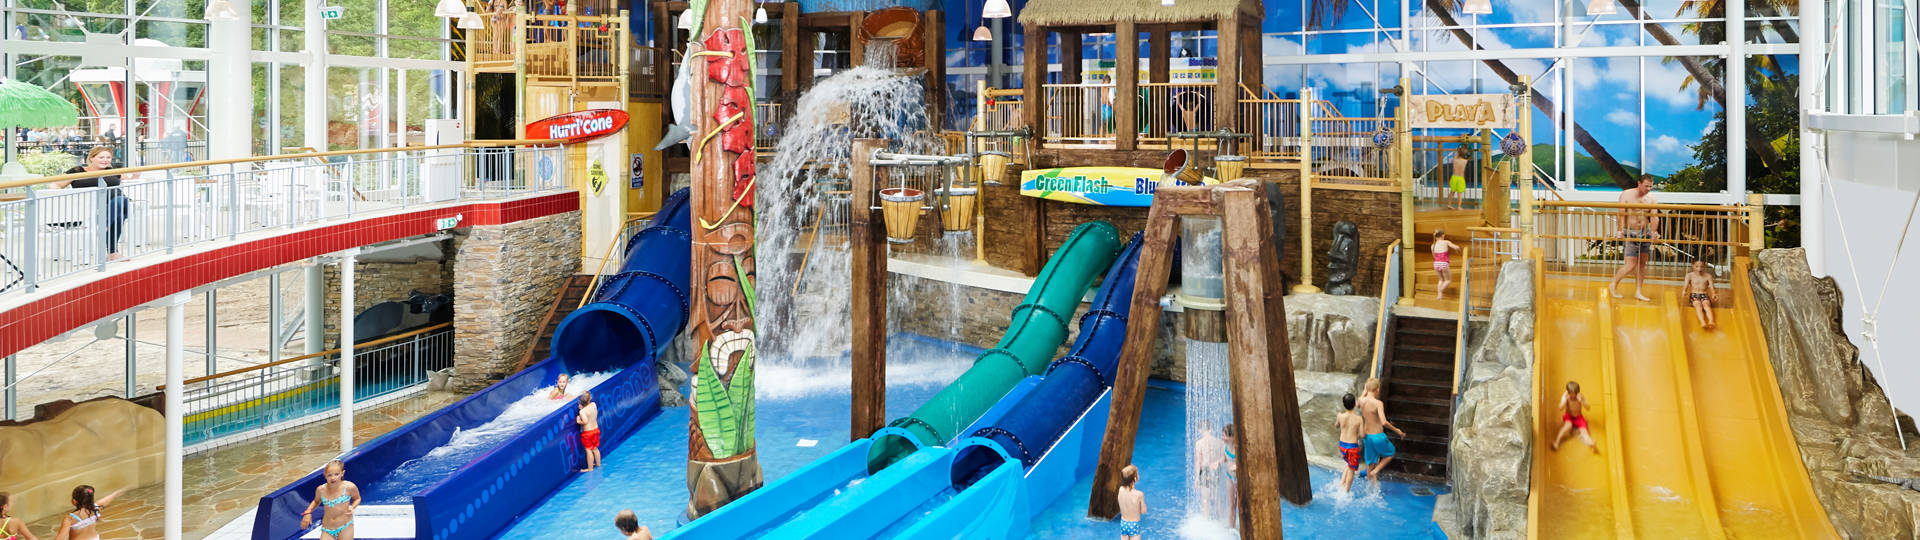 holiday park and amusement park in holland duinrell com